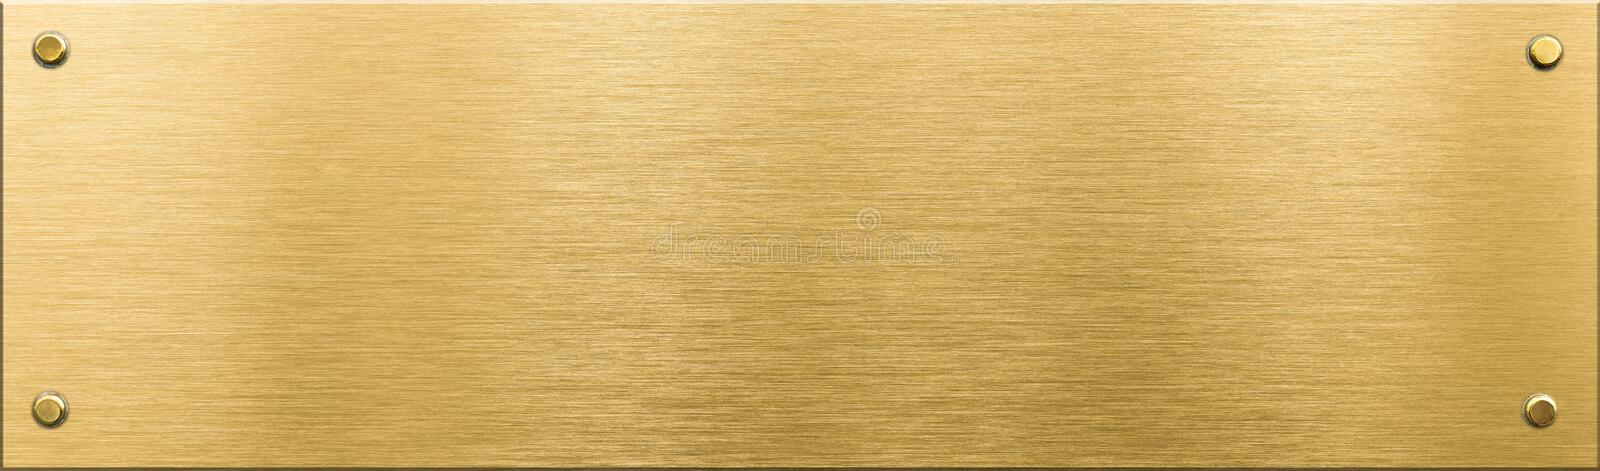 Gold metal plaque or nameboard with rivets royalty free stock photography